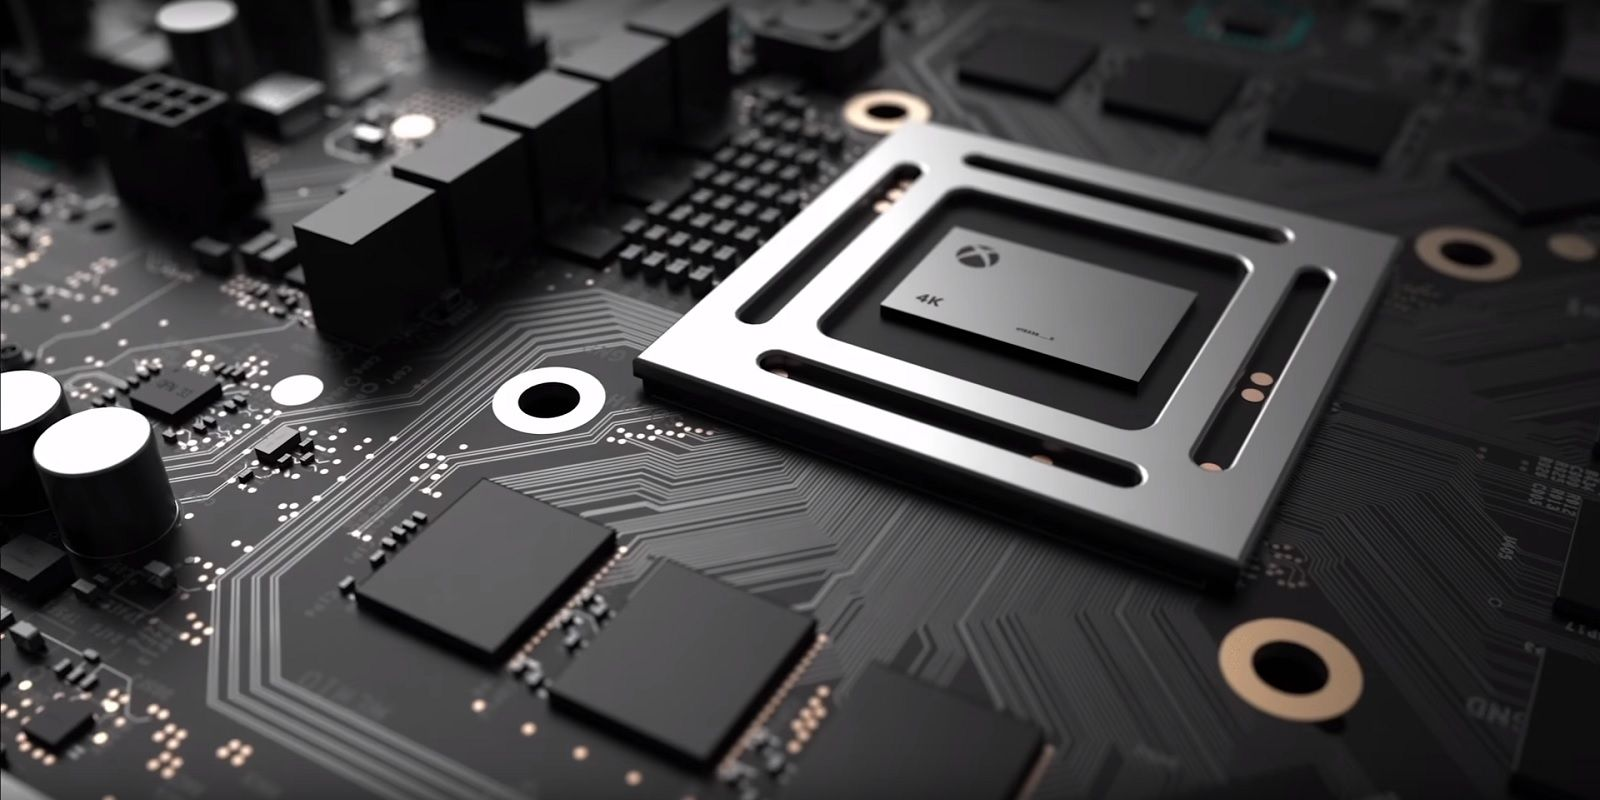 Project Scorpio podría capturar y retransmitir a 4K y 60 fps